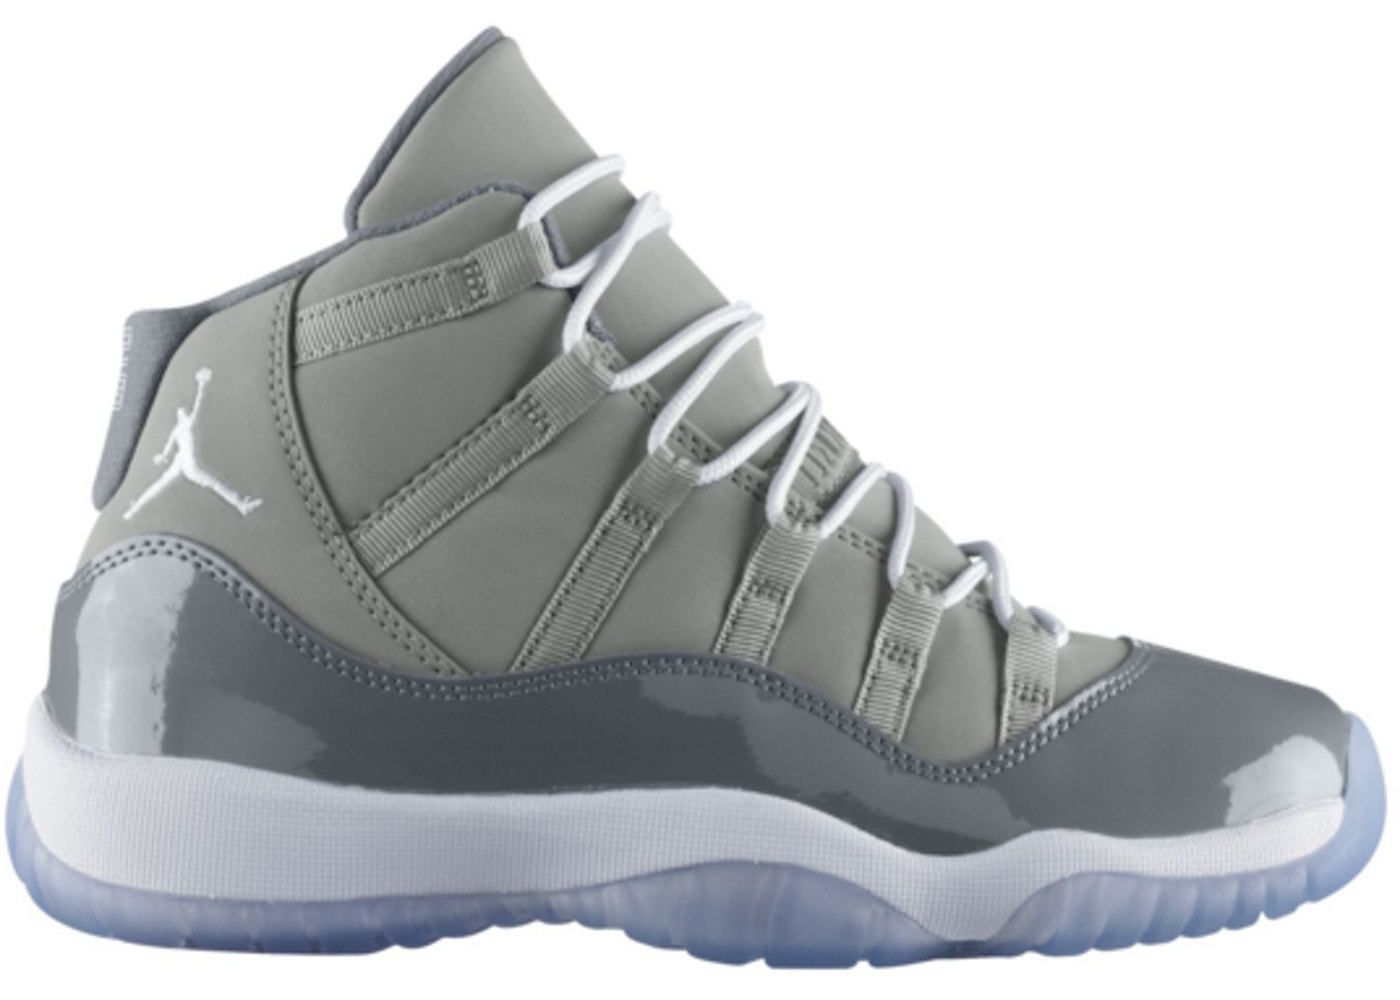 84456b231966 Air Jordan 11 Shoes - Average Sale Price